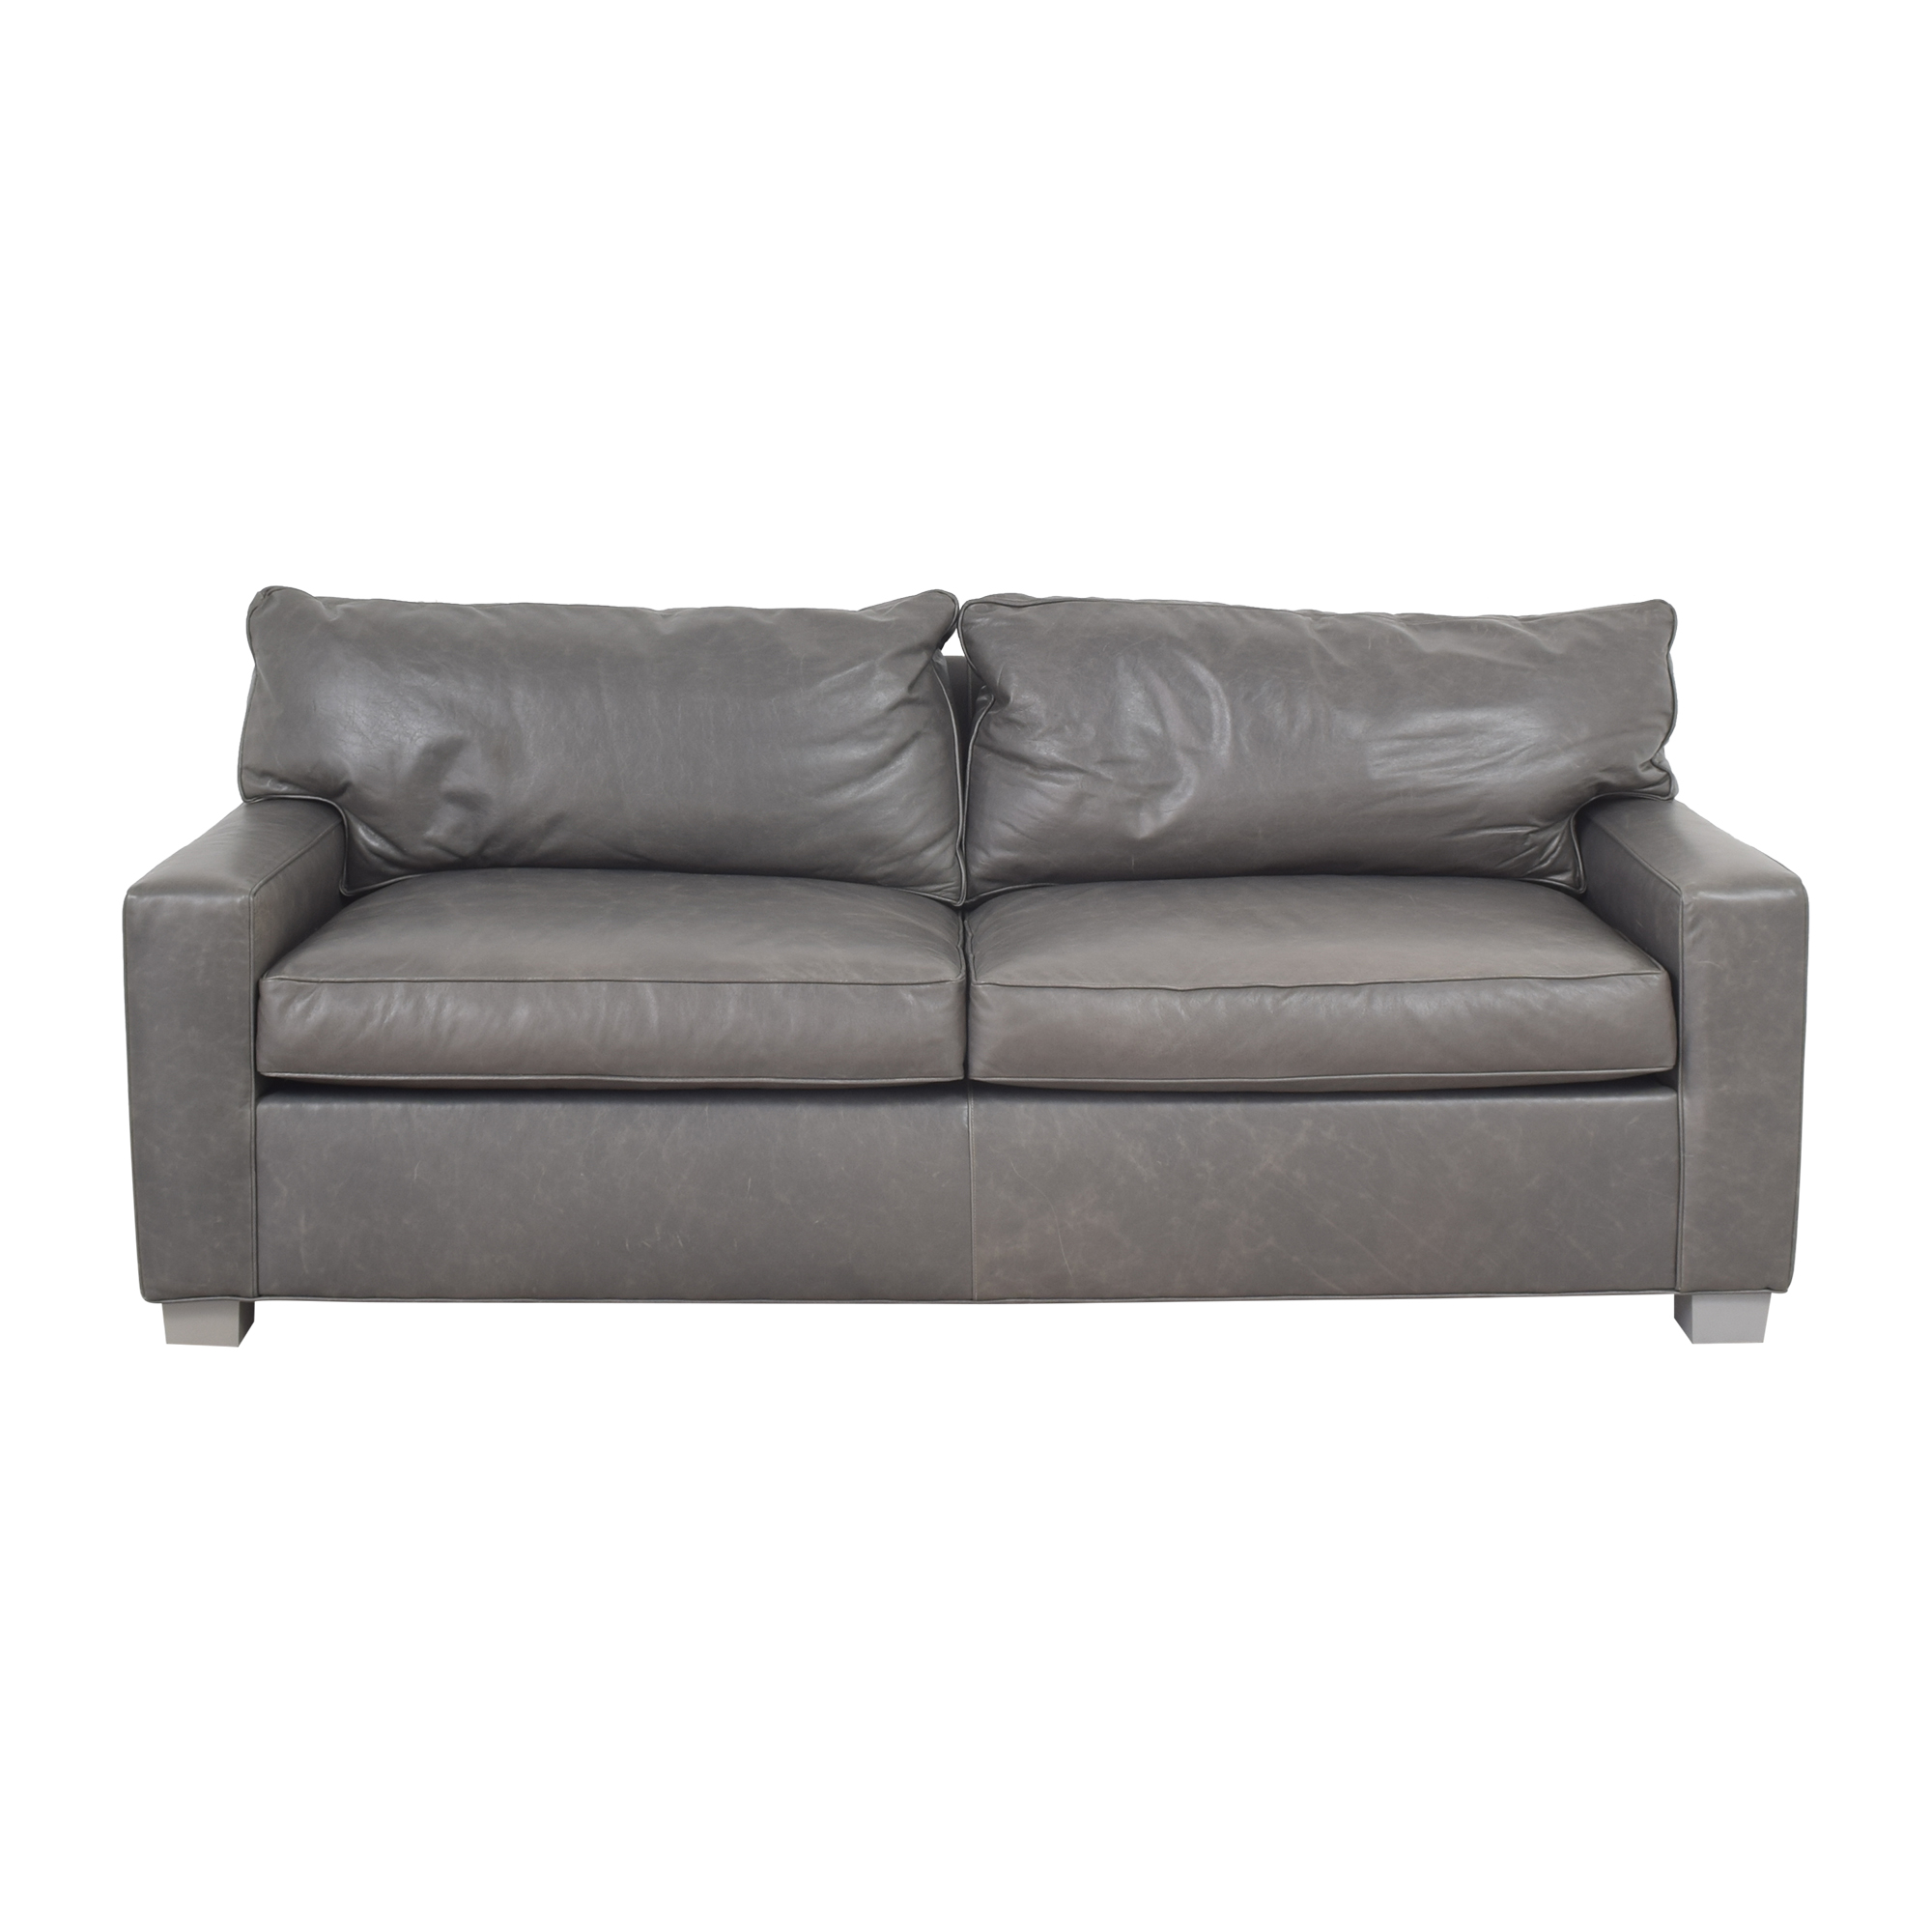 Mitchell Gold + Bob Williams Alex Two Cushion Sofa sale